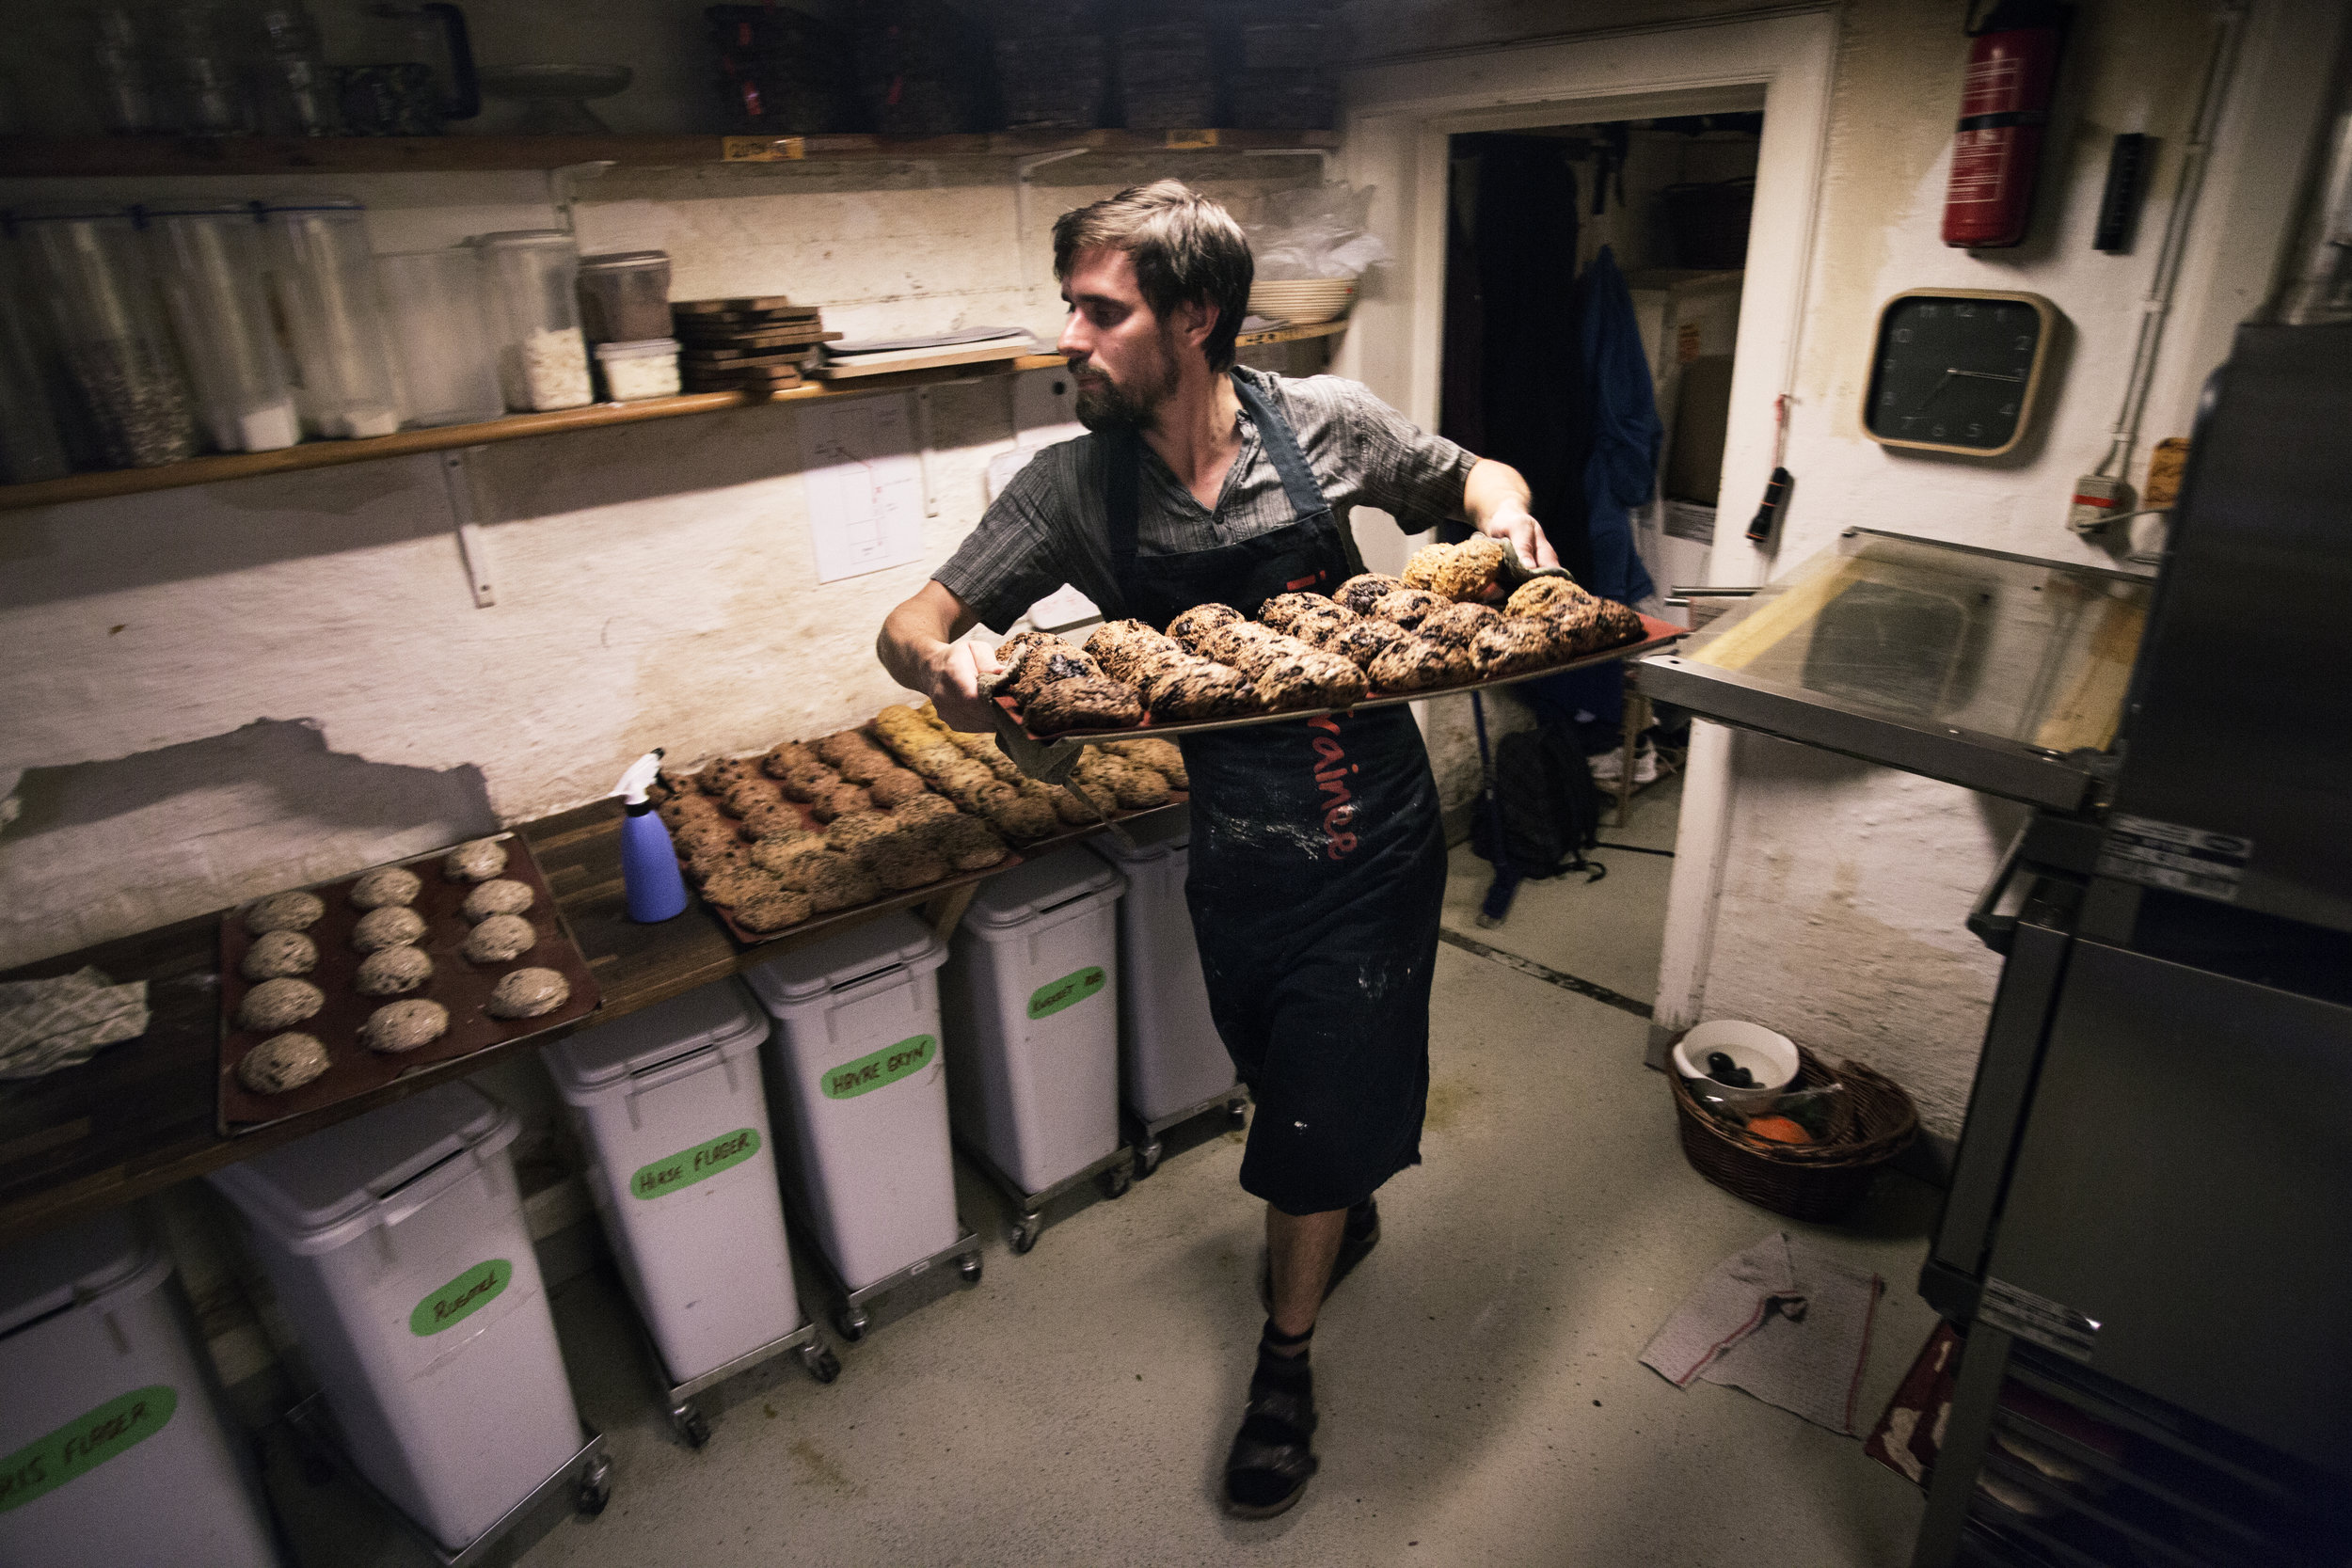 Mathieu Crespe pulls scones from in the oven in the basement of the Ganeyfryd, an organic market, early one morning in Aarhus, Denmark.